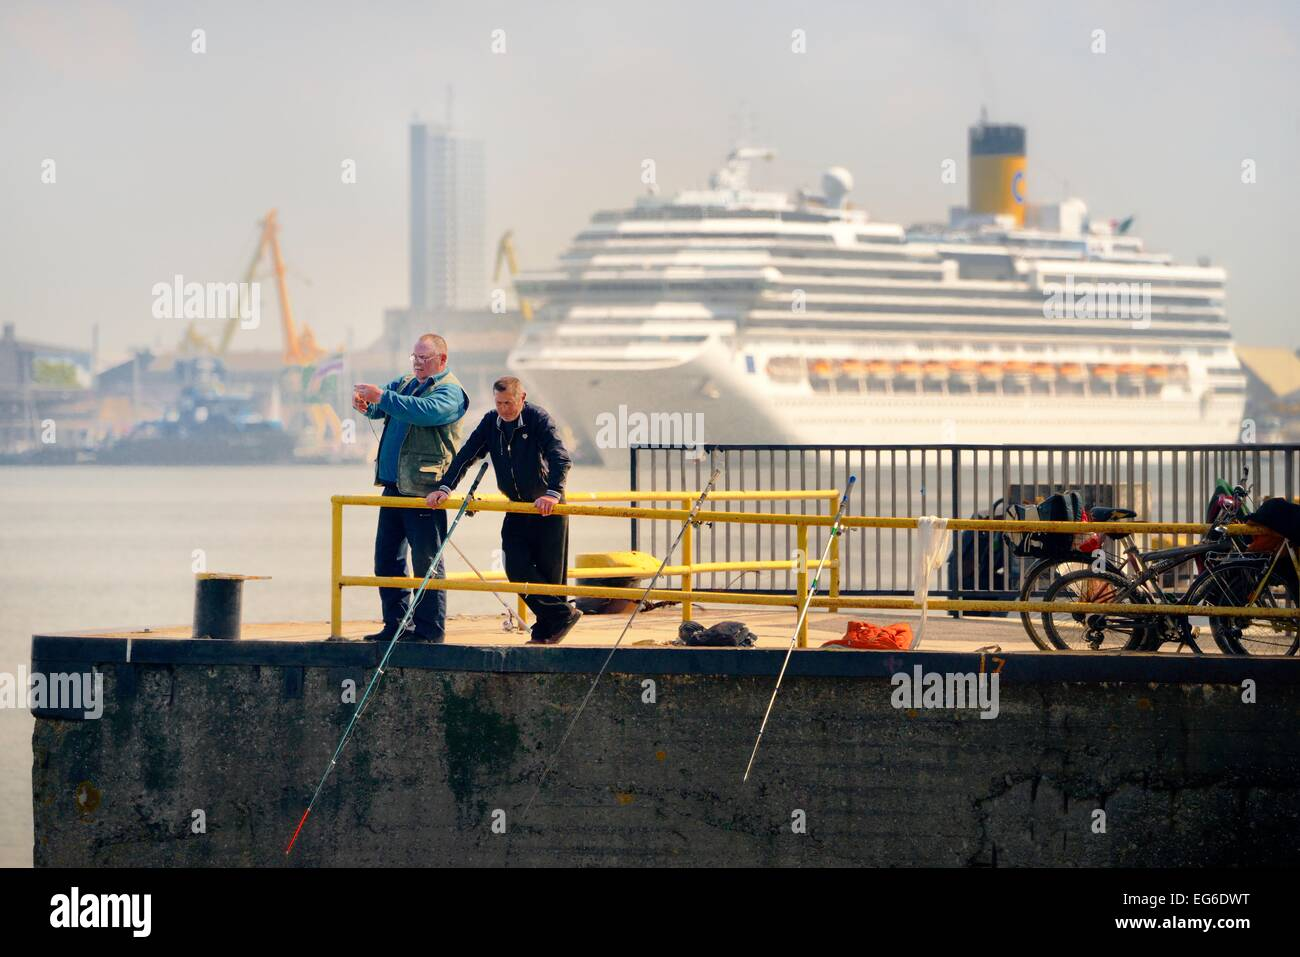 Klaipeda Lithuania. Fishing from the pier. Cruise ship Costa Pacifica and port facilities across navigation channel - Stock Image